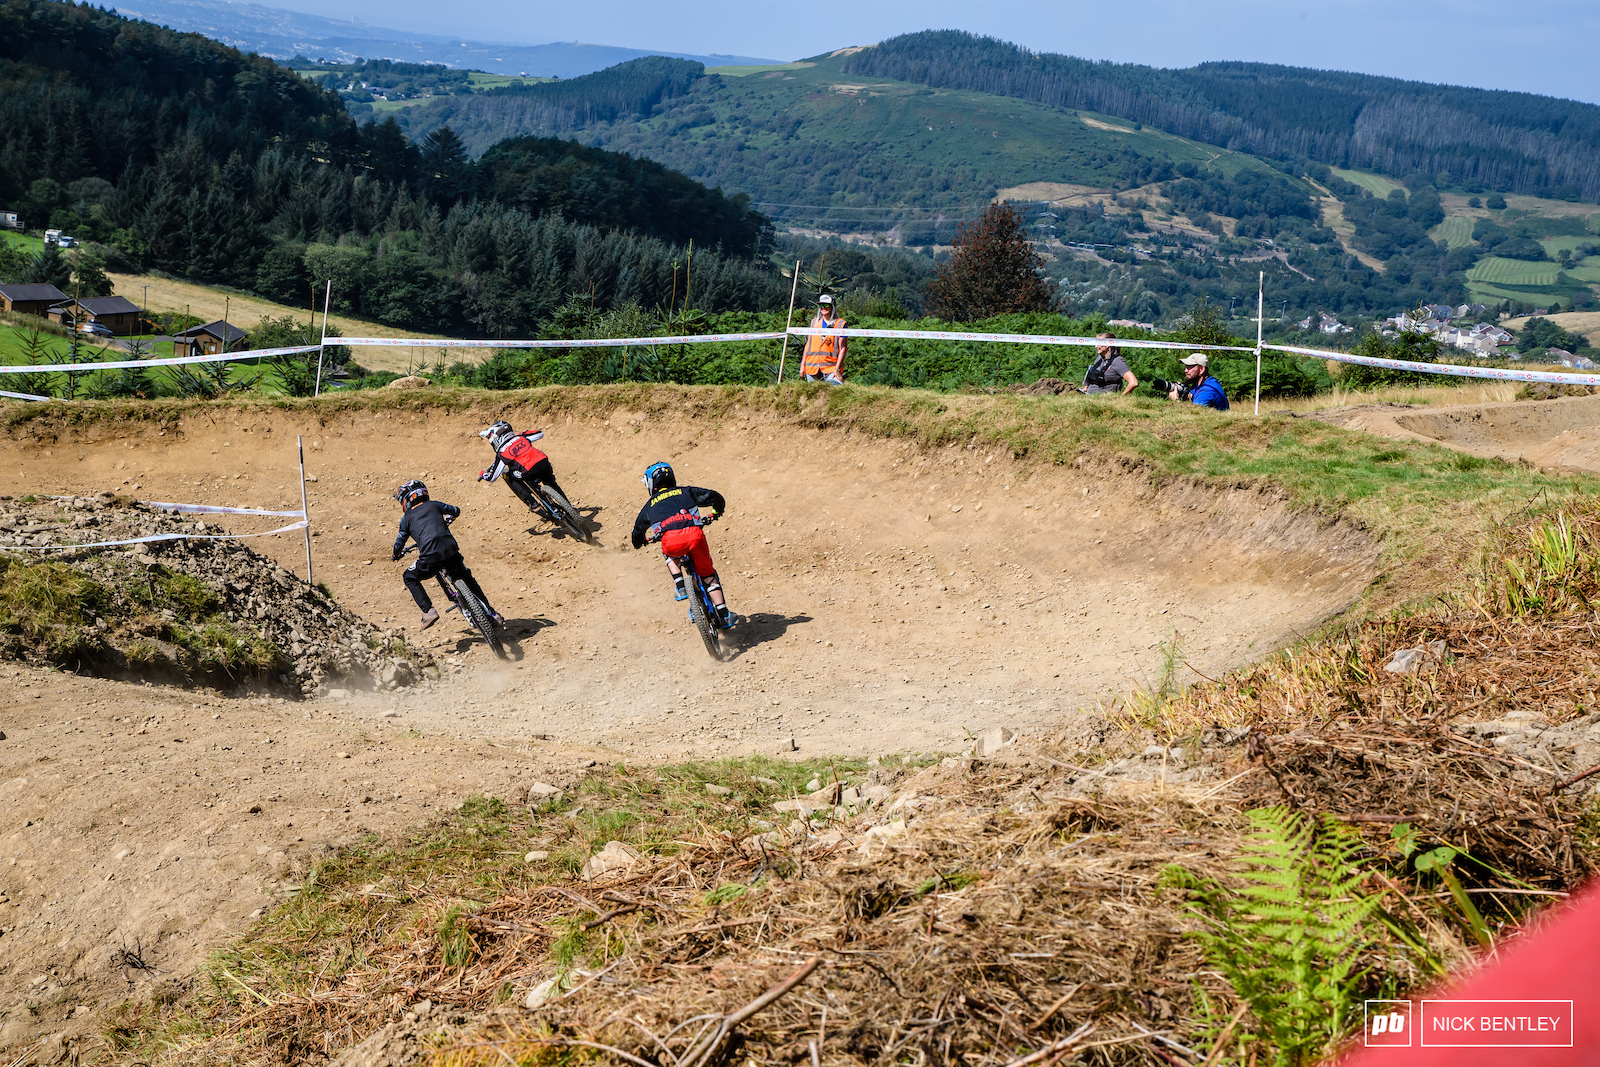 Afan s Stunning views were only beten by the close racing on track